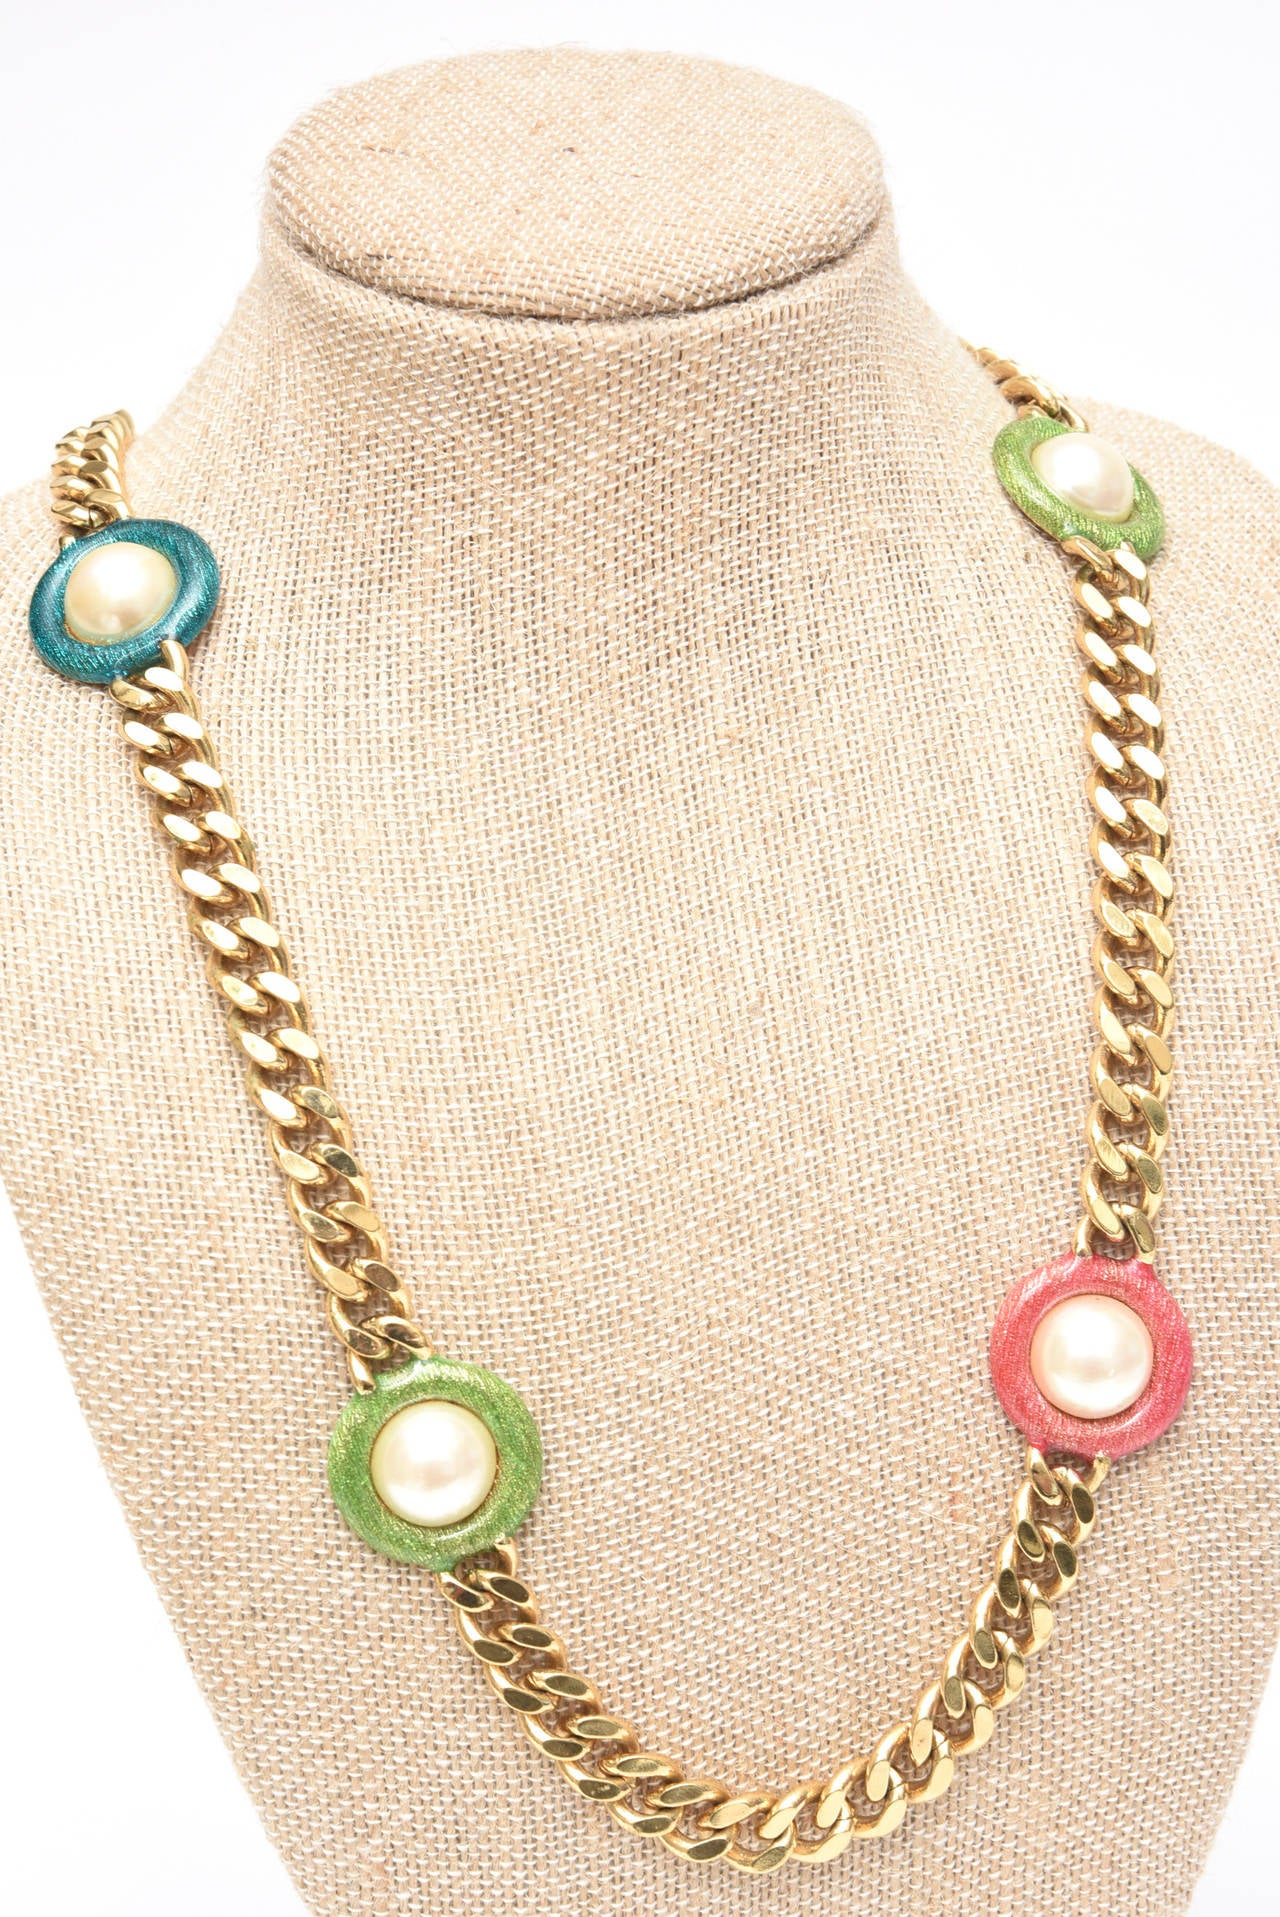 Guy Laroche Gold Tone Chain Link Strand Necklace with Enamel and Faux Pearl 9